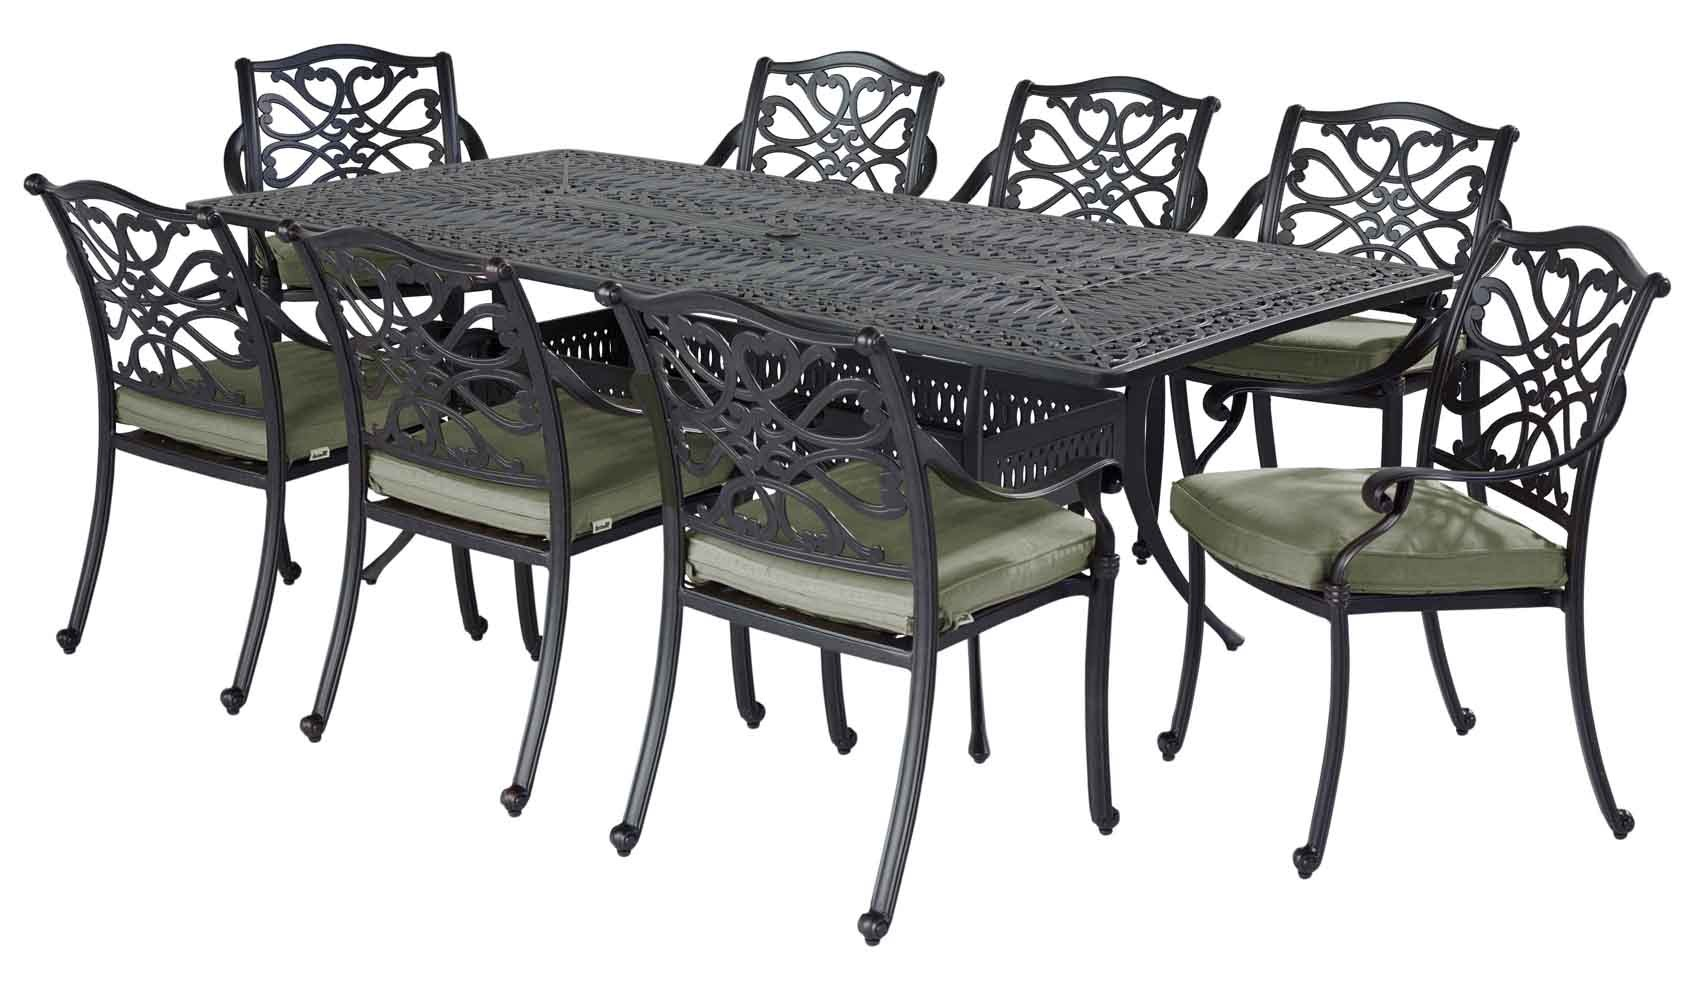 cast aluminium garden furniture hartman capri 8 seater cast aluminium rectangle garden set with wheatgrass TLVHMYP